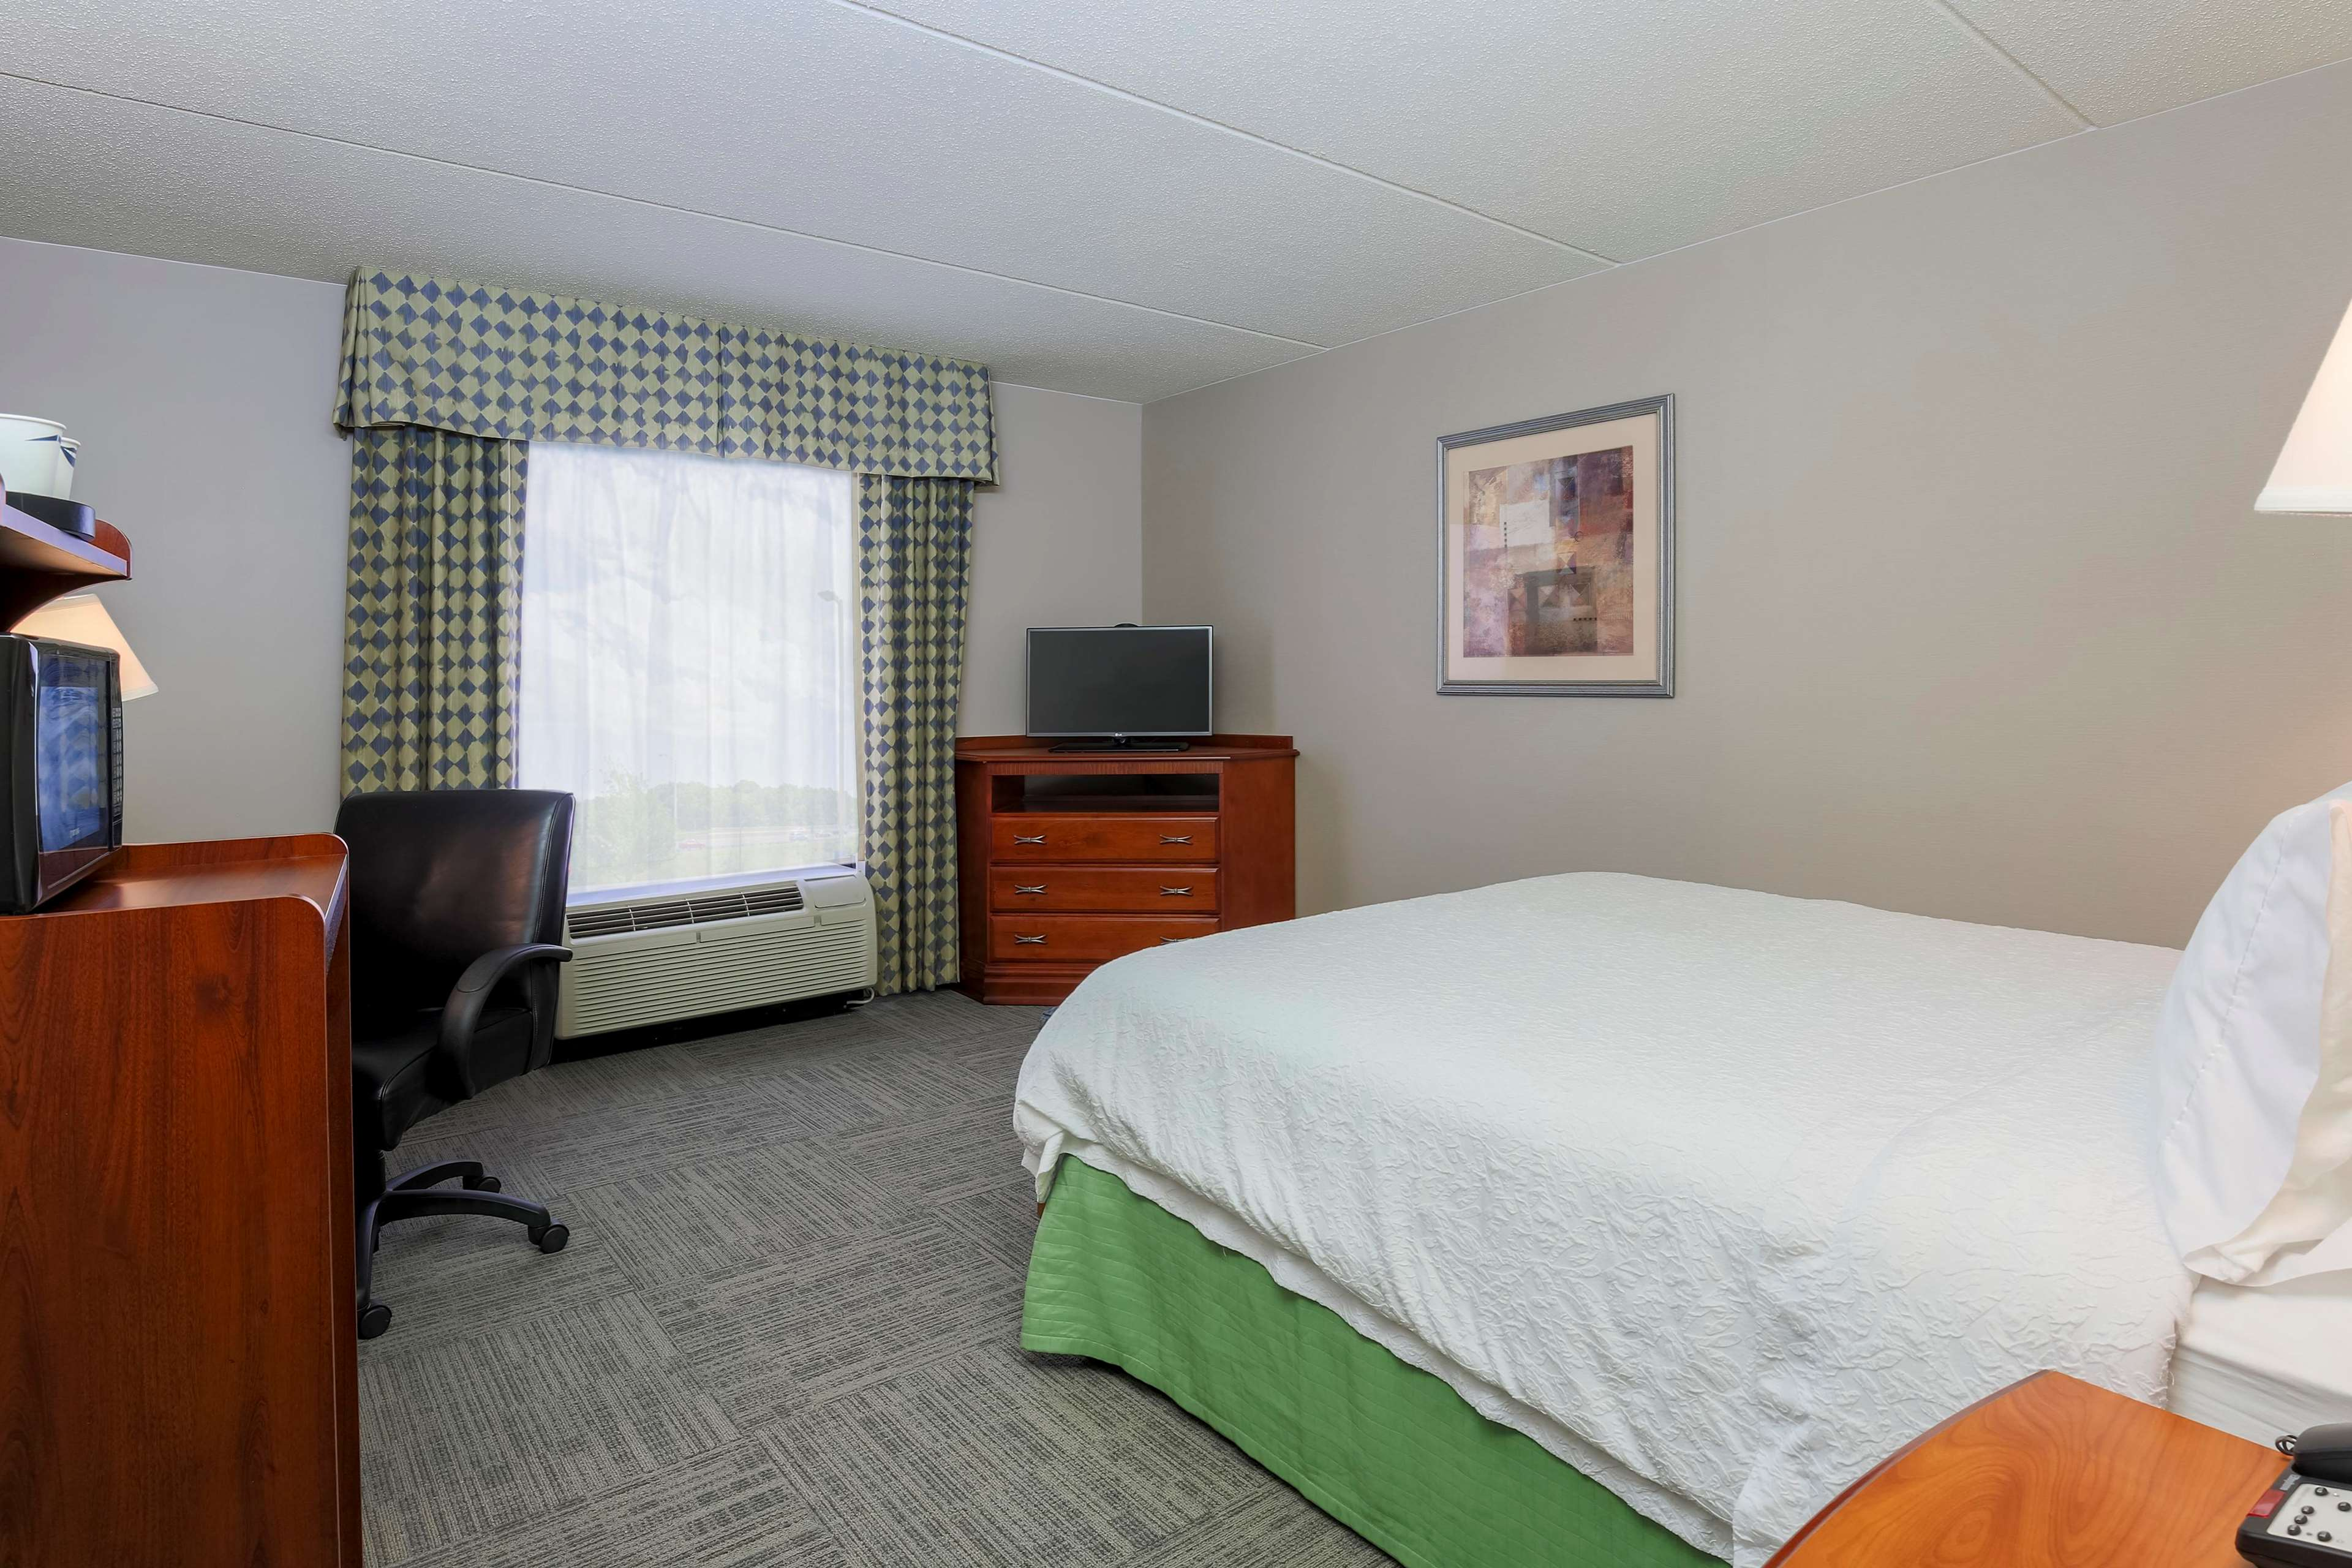 Hampton Inn and Suites New Haven-South-West Haven, CT Hotel